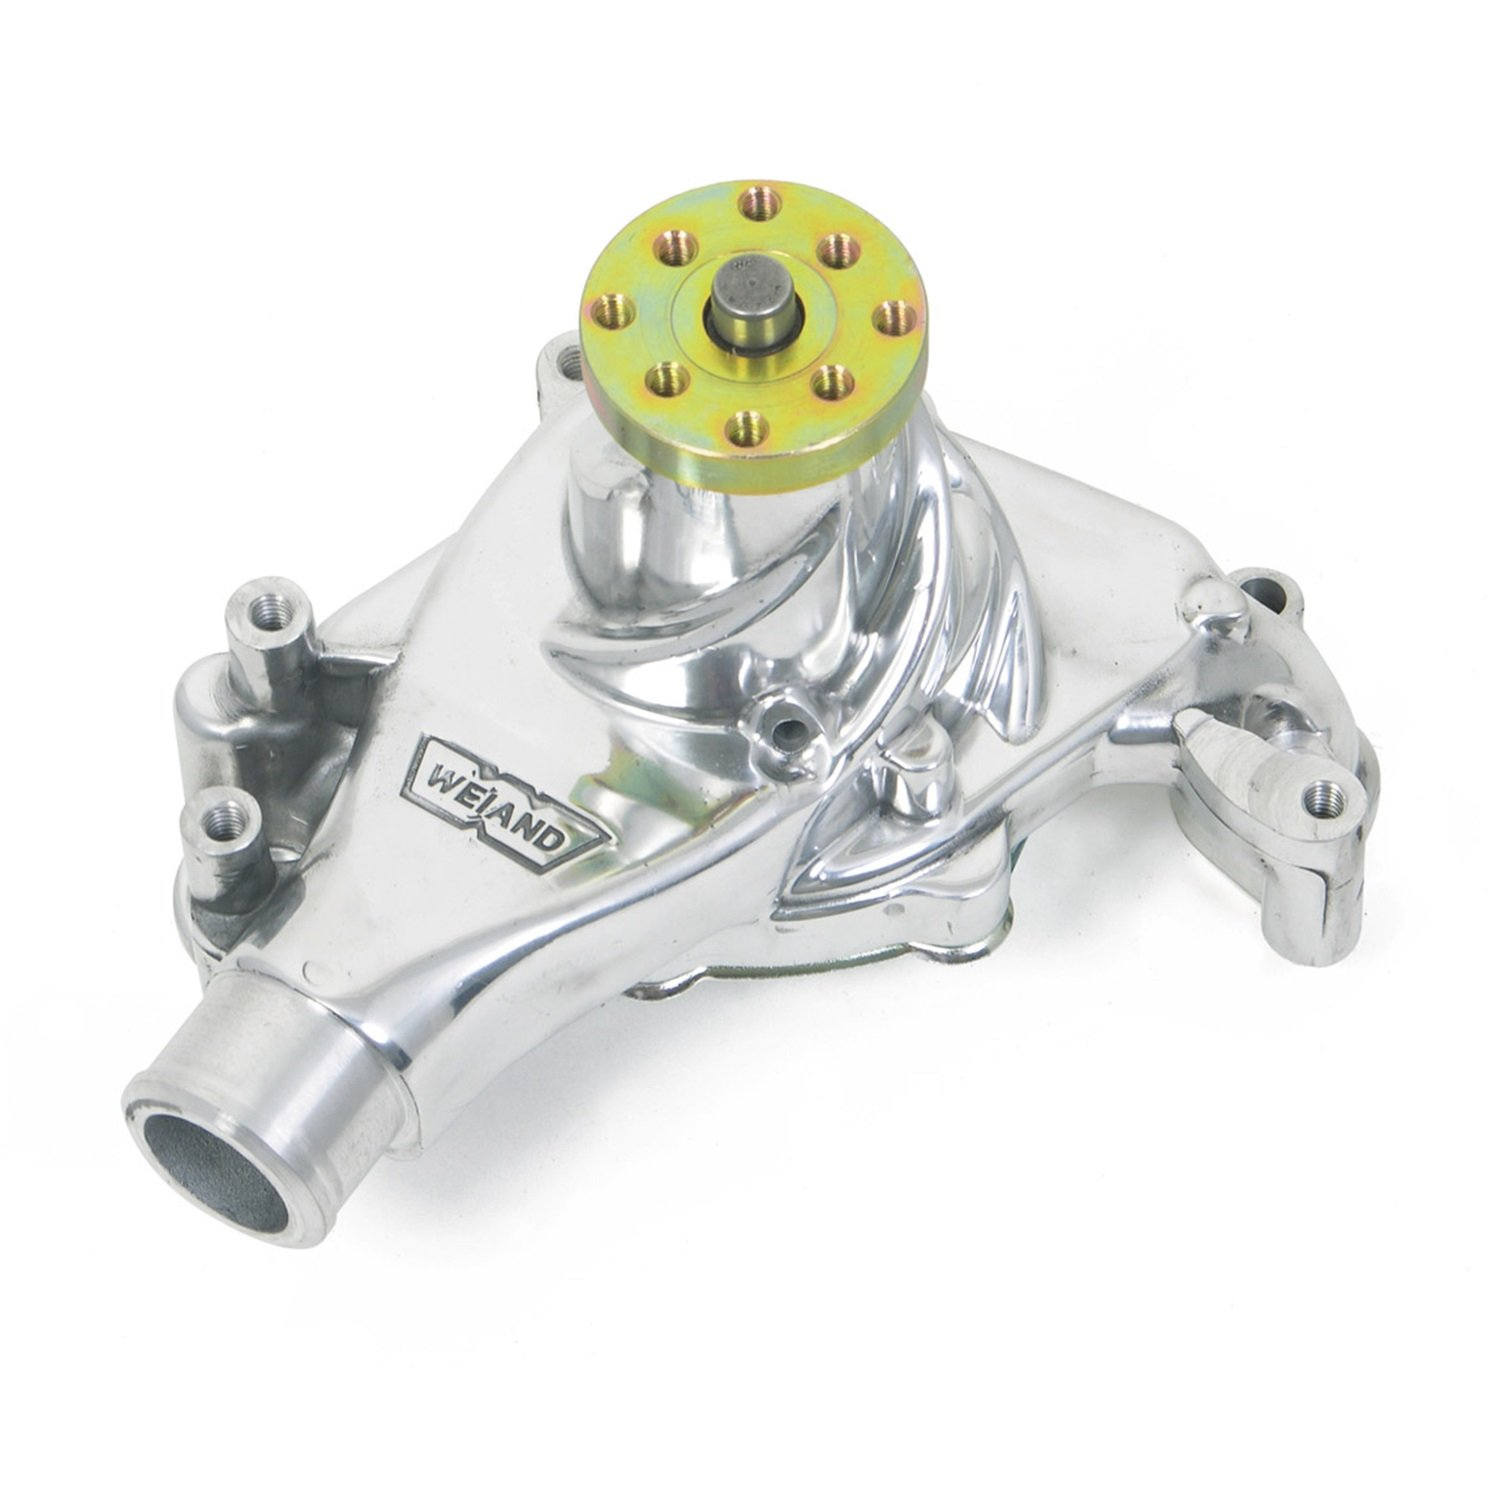 Weiand 9240P Action +Plus Water Pump by Weiand